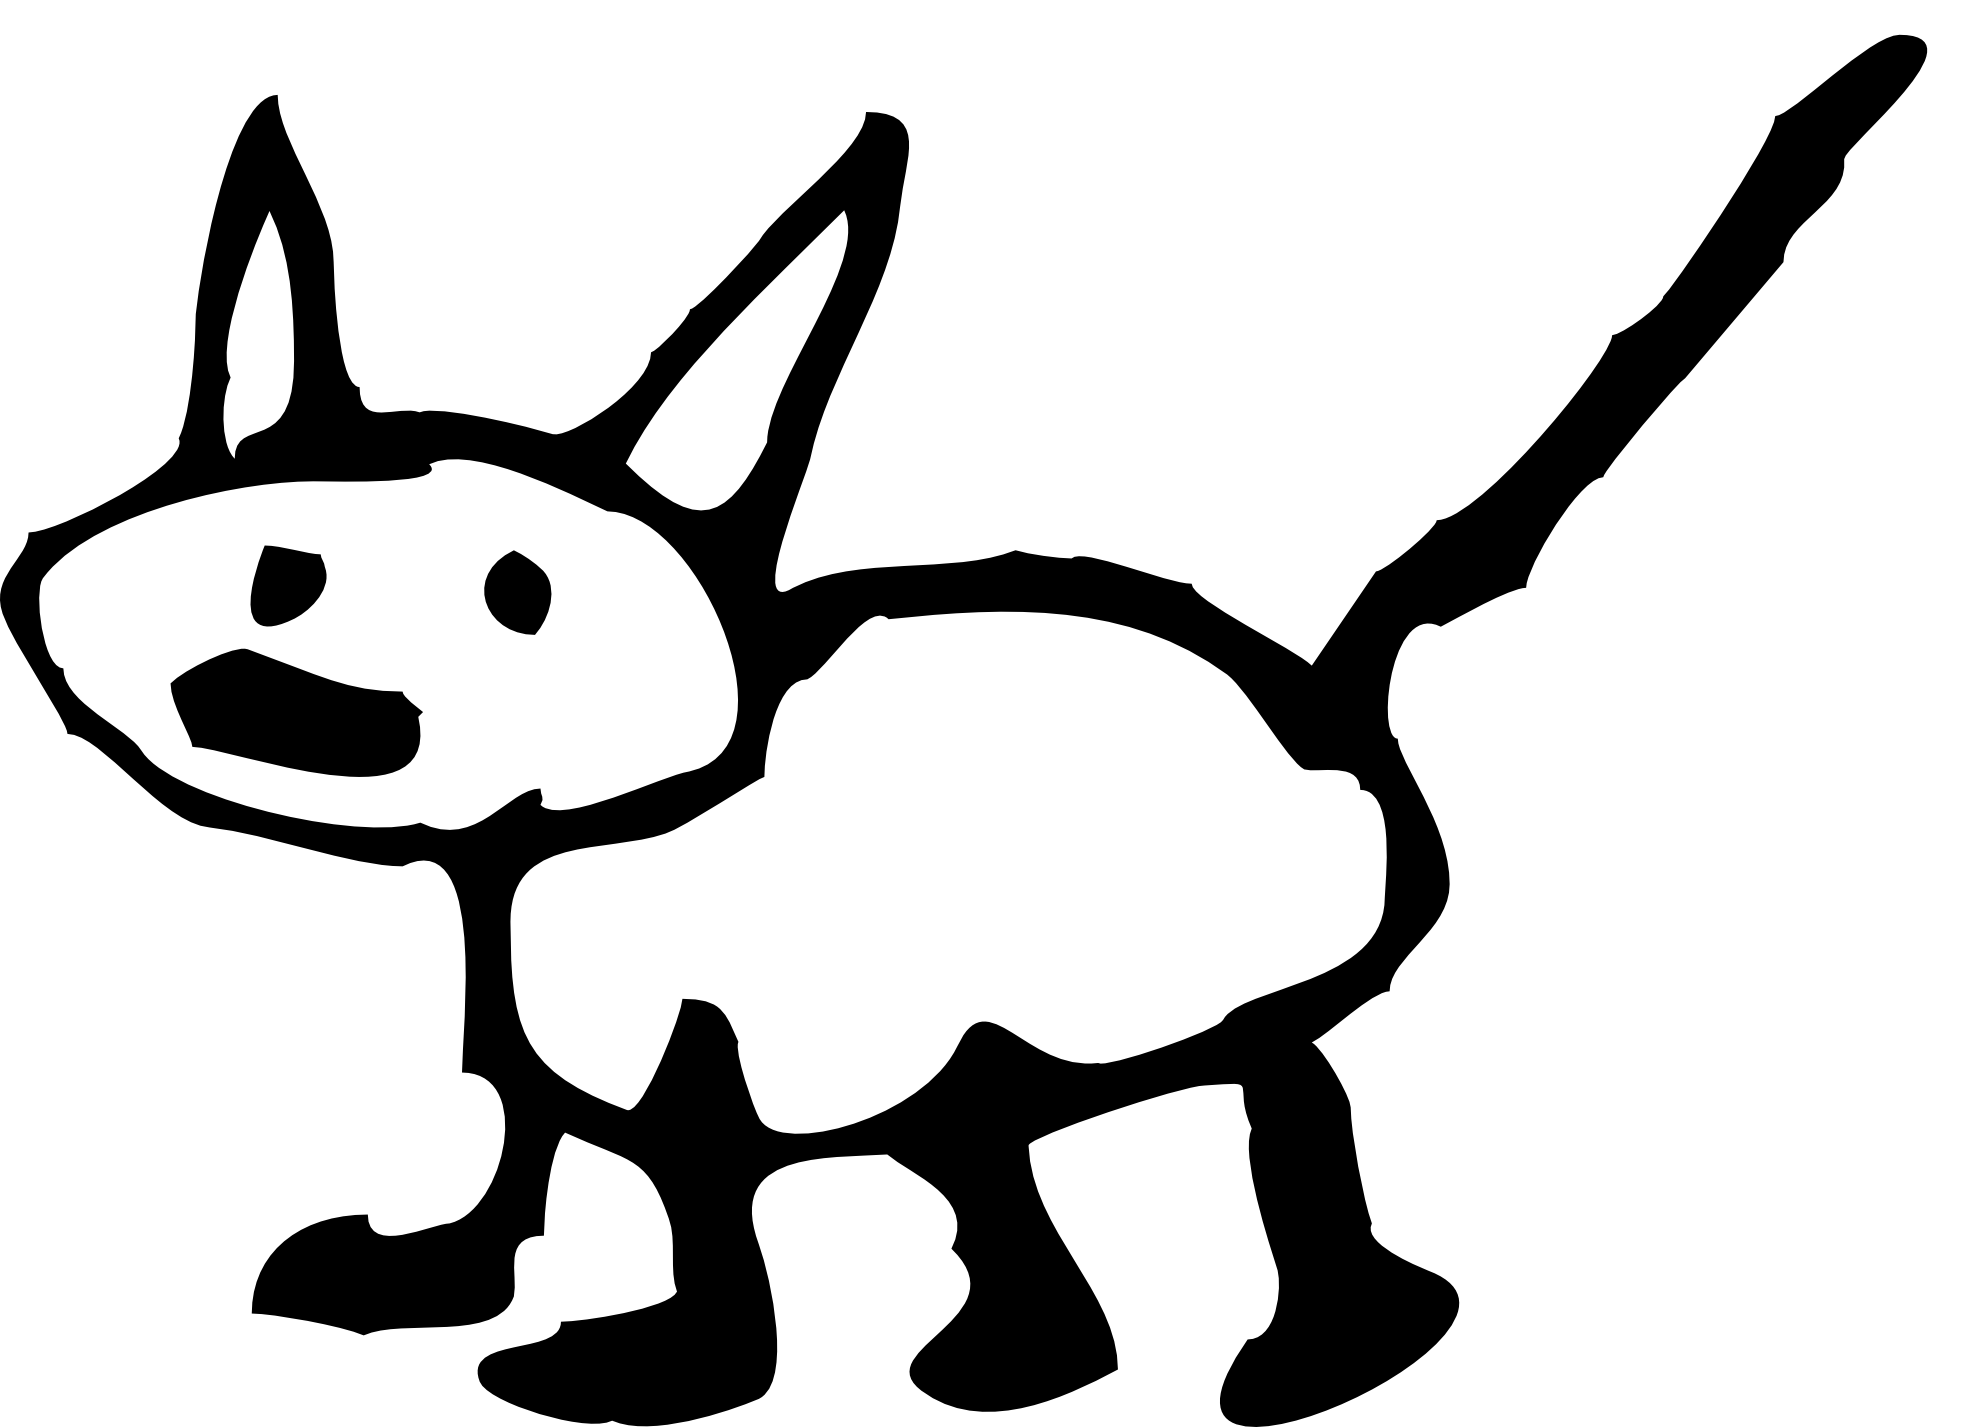 Top drawing black and white. Best free cat clip